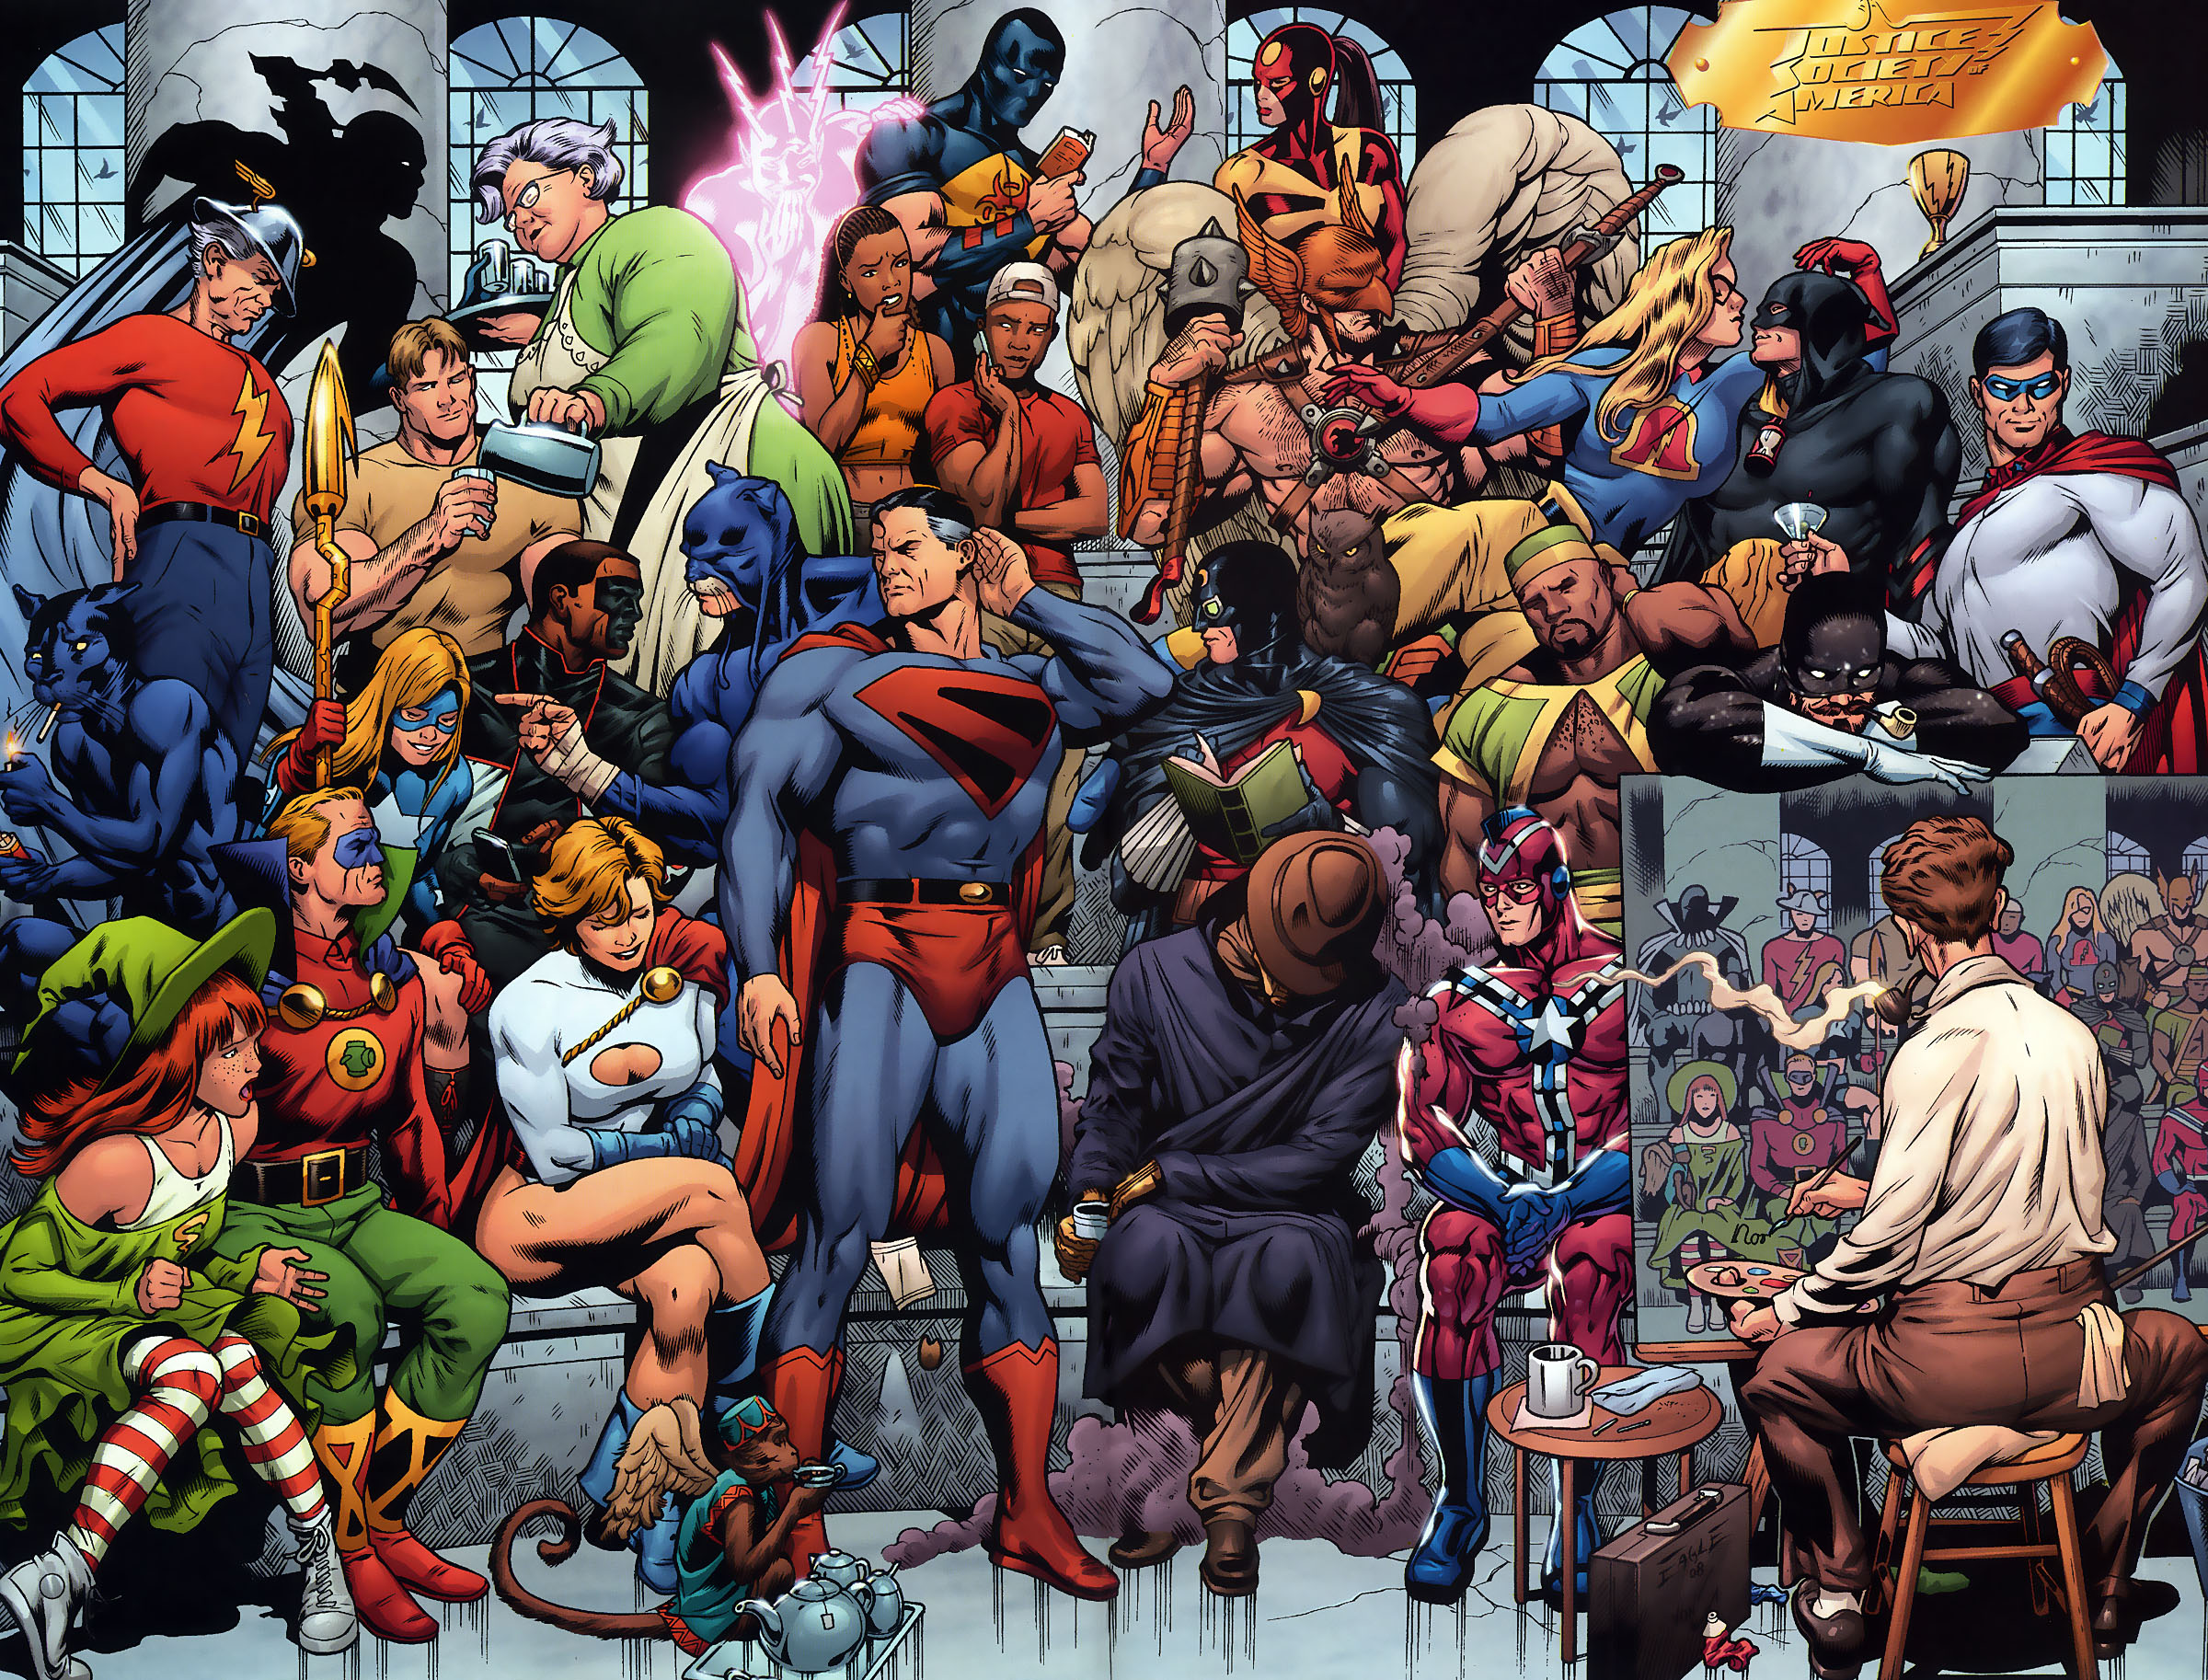 Justice society of america full hd wallpaper and background image comics justice society of america superman flash green lantern power girl liberty belle earth voltagebd Images